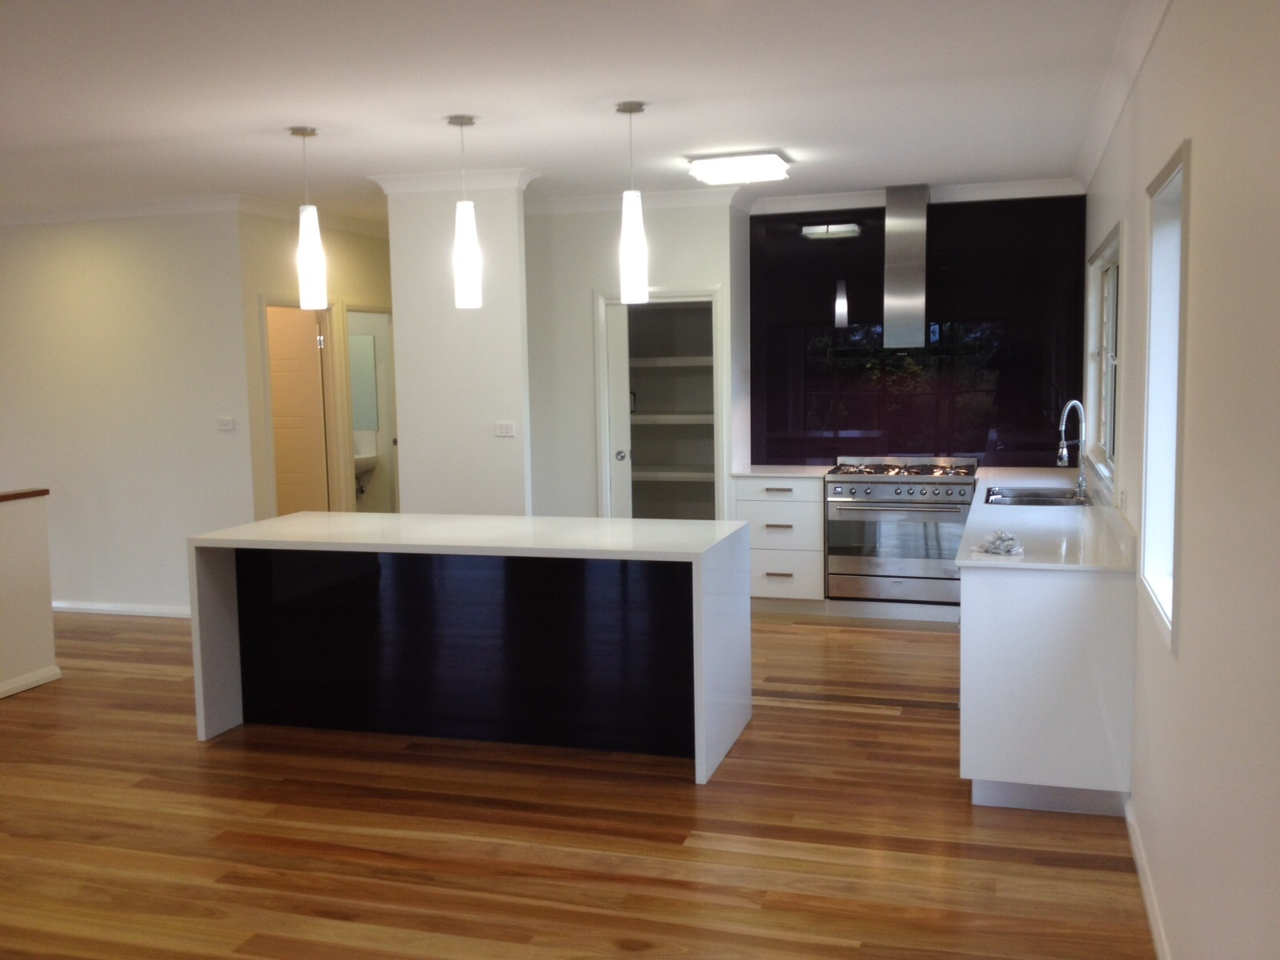 Vegas living upstairs modern kitchen with glass splashbacks gallery tullipan homes Kitchen upstairs house design